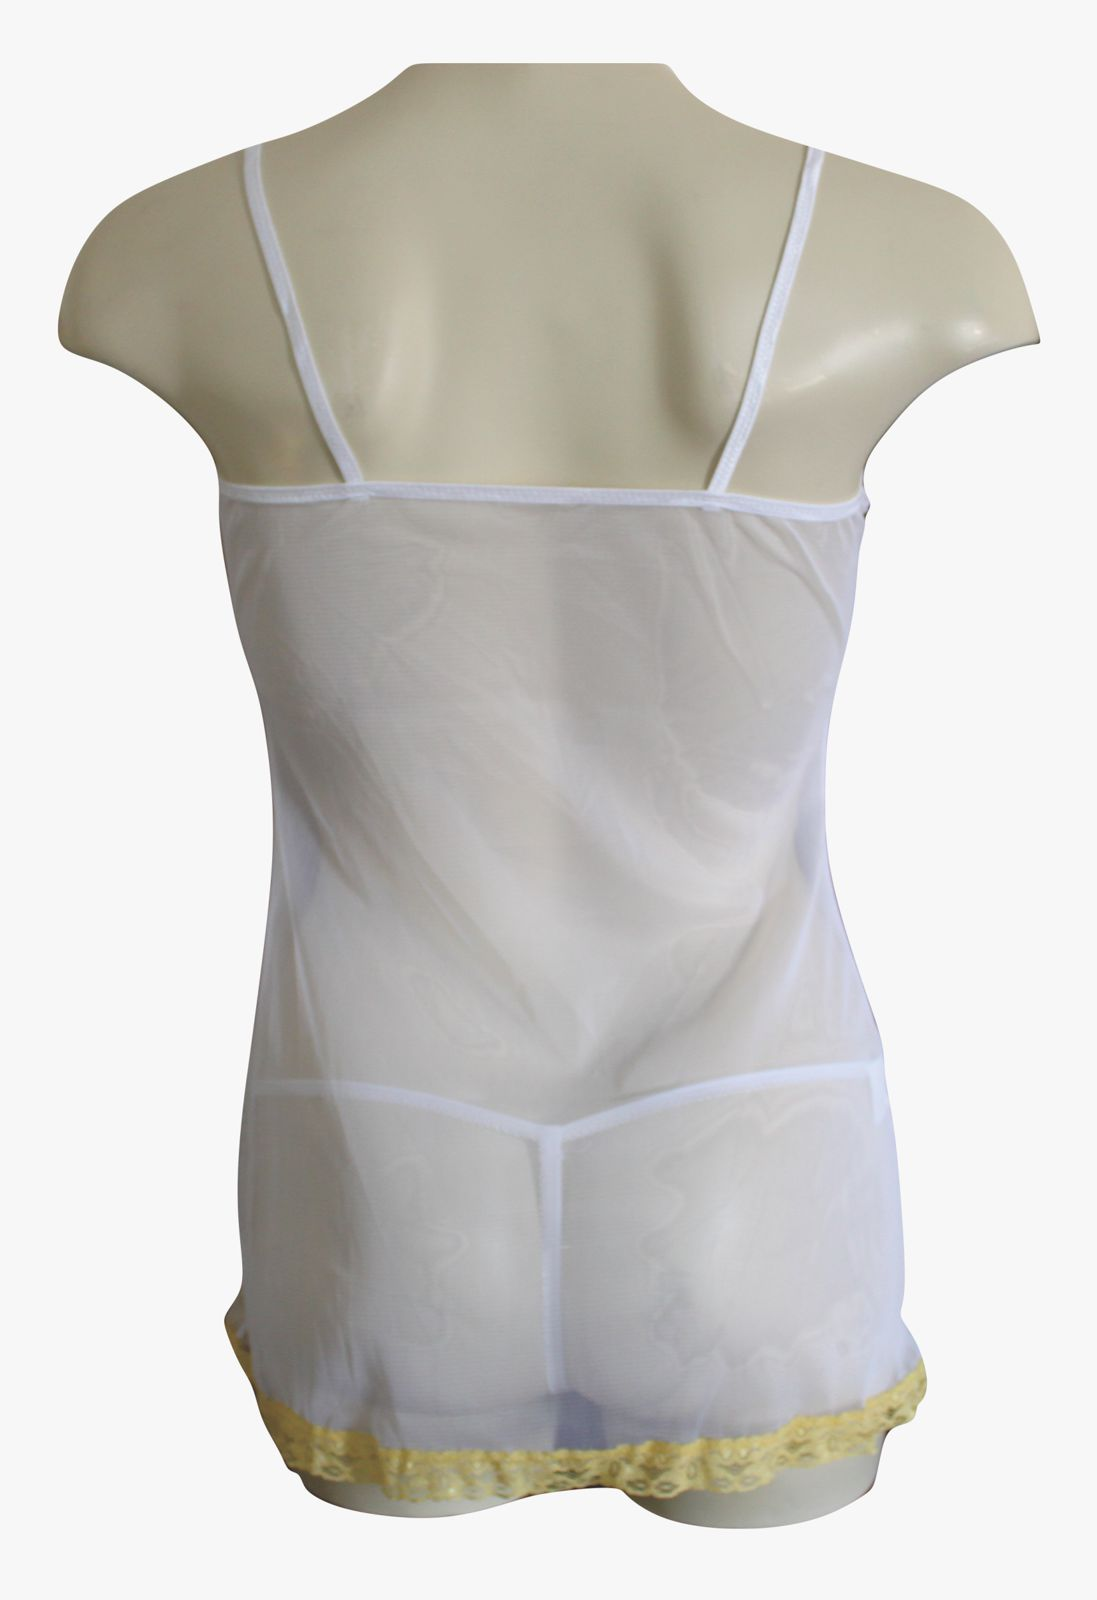 Sheer Chemise with Contrasting Lace Trim & Matching Thong